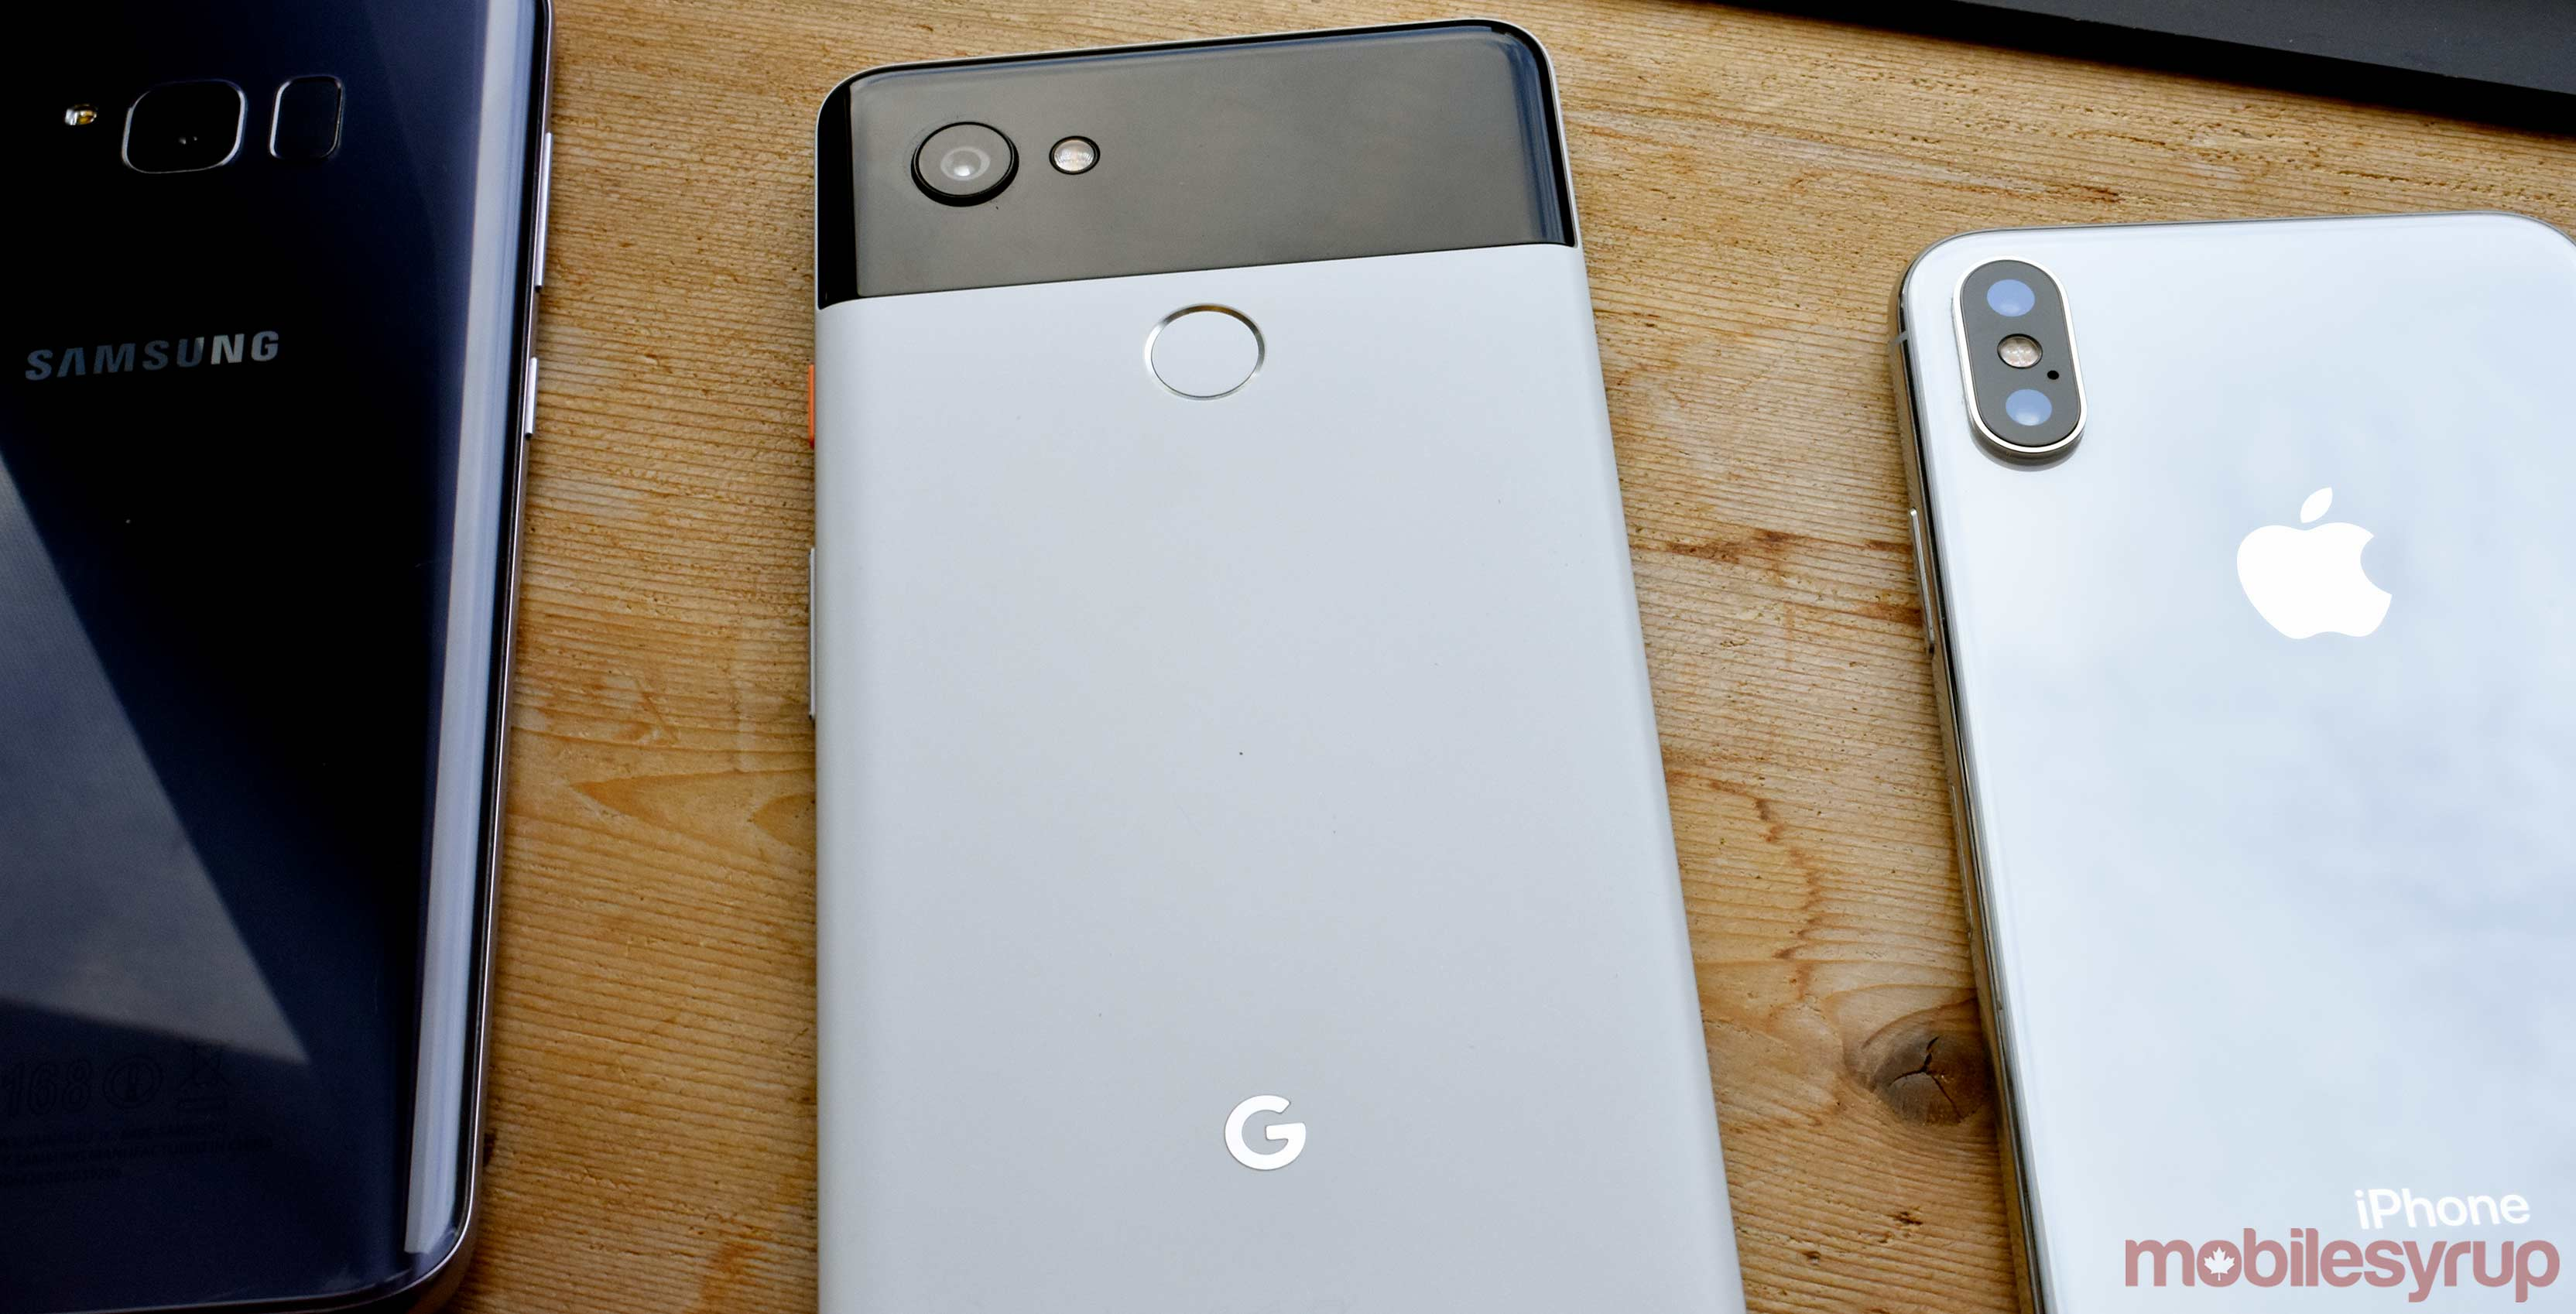 The Google Pixel 2 XL, Samsung S8 Plus and the iPhone X all beside one another